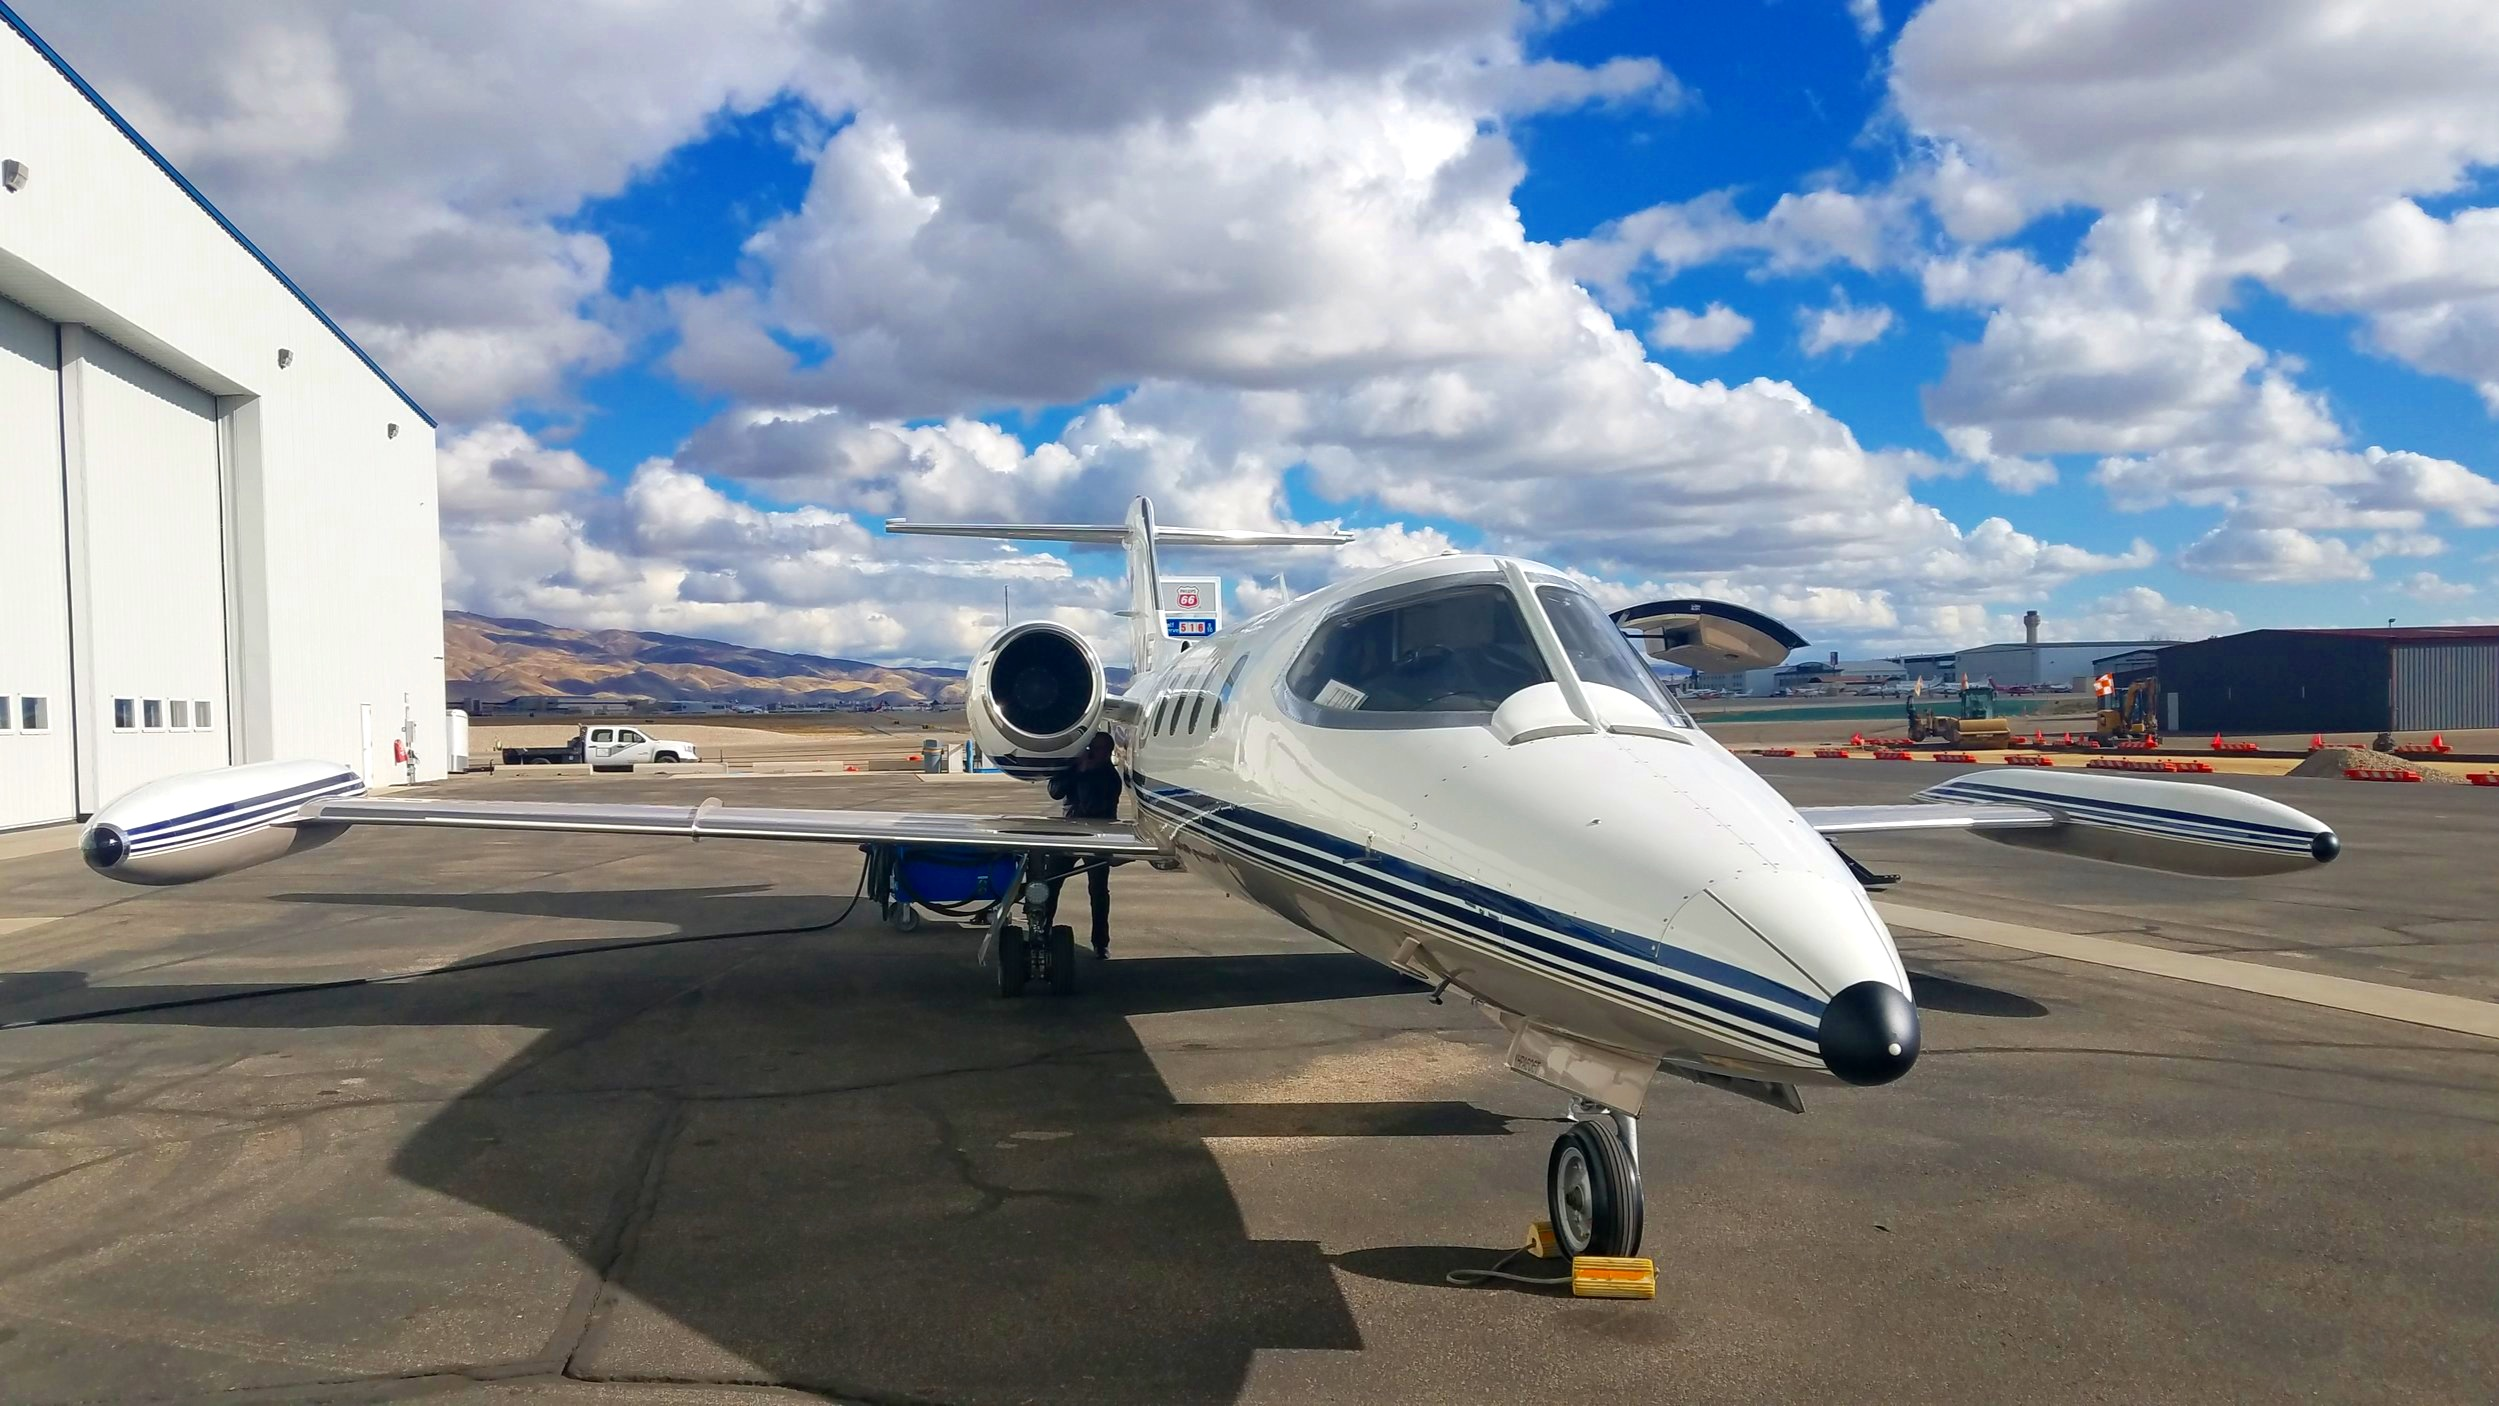 Type rating in a LearJet and service to Air Ambulance, saving lives as you fly.